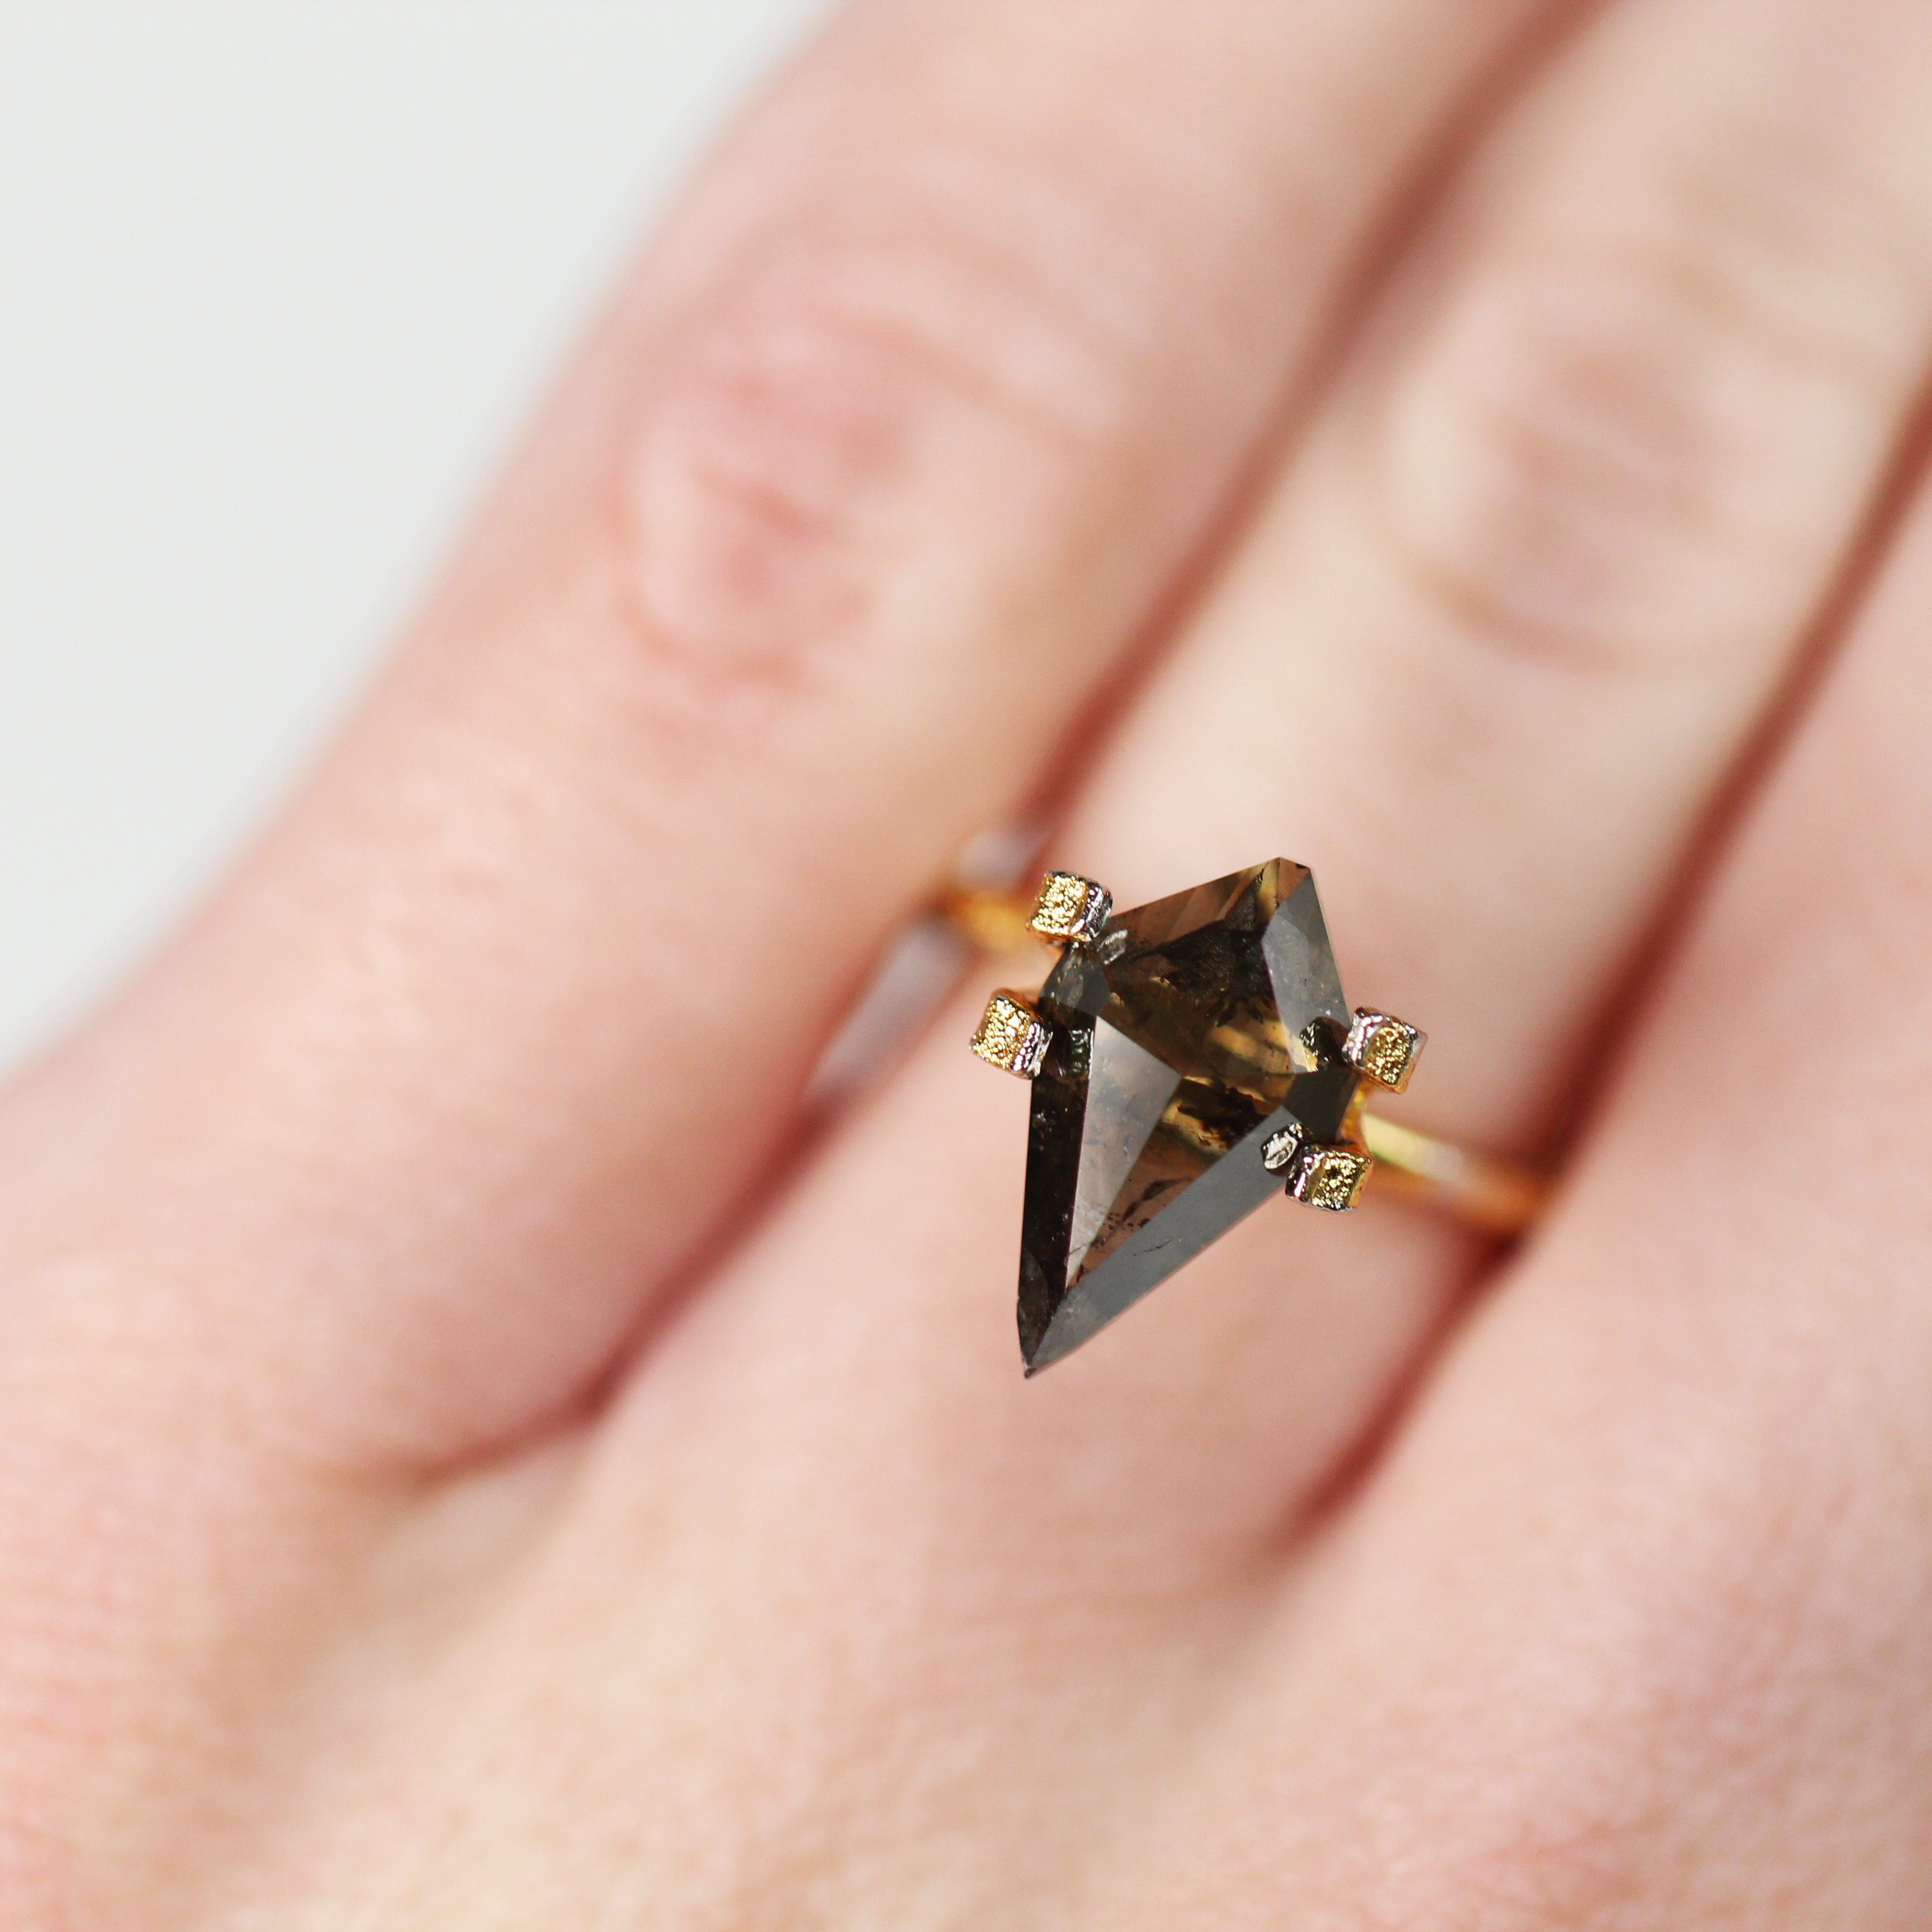 2.20 Carat Kite Celestial Diamond - Inventory Code KRB220 - Midwinter Co. Alternative Bridal Rings and Modern Fine Jewelry